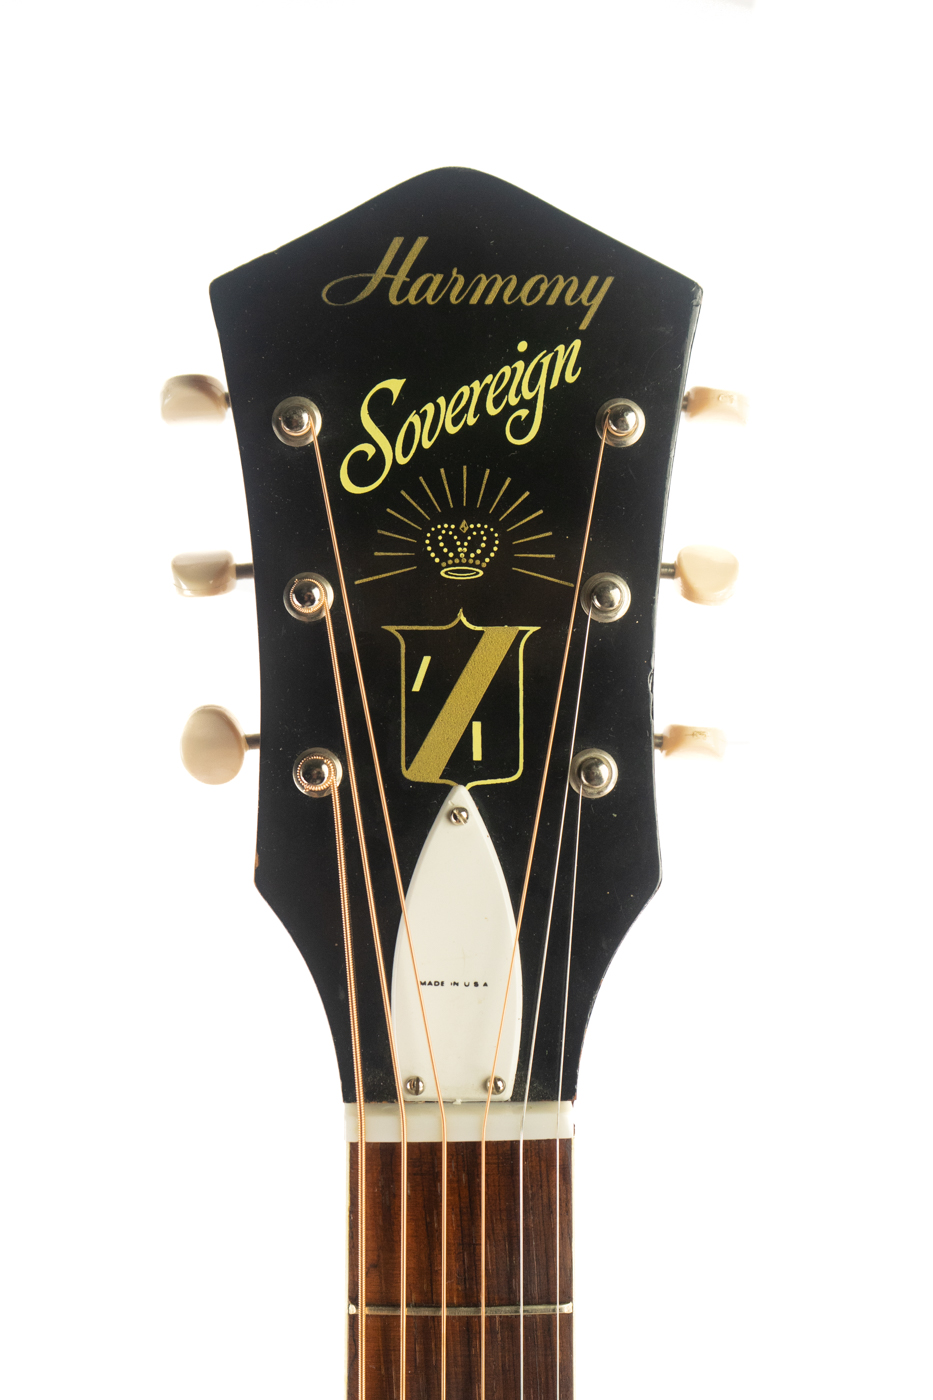 1960s Harmony Sovereign H1203 Thunder Road Guitars Seattle